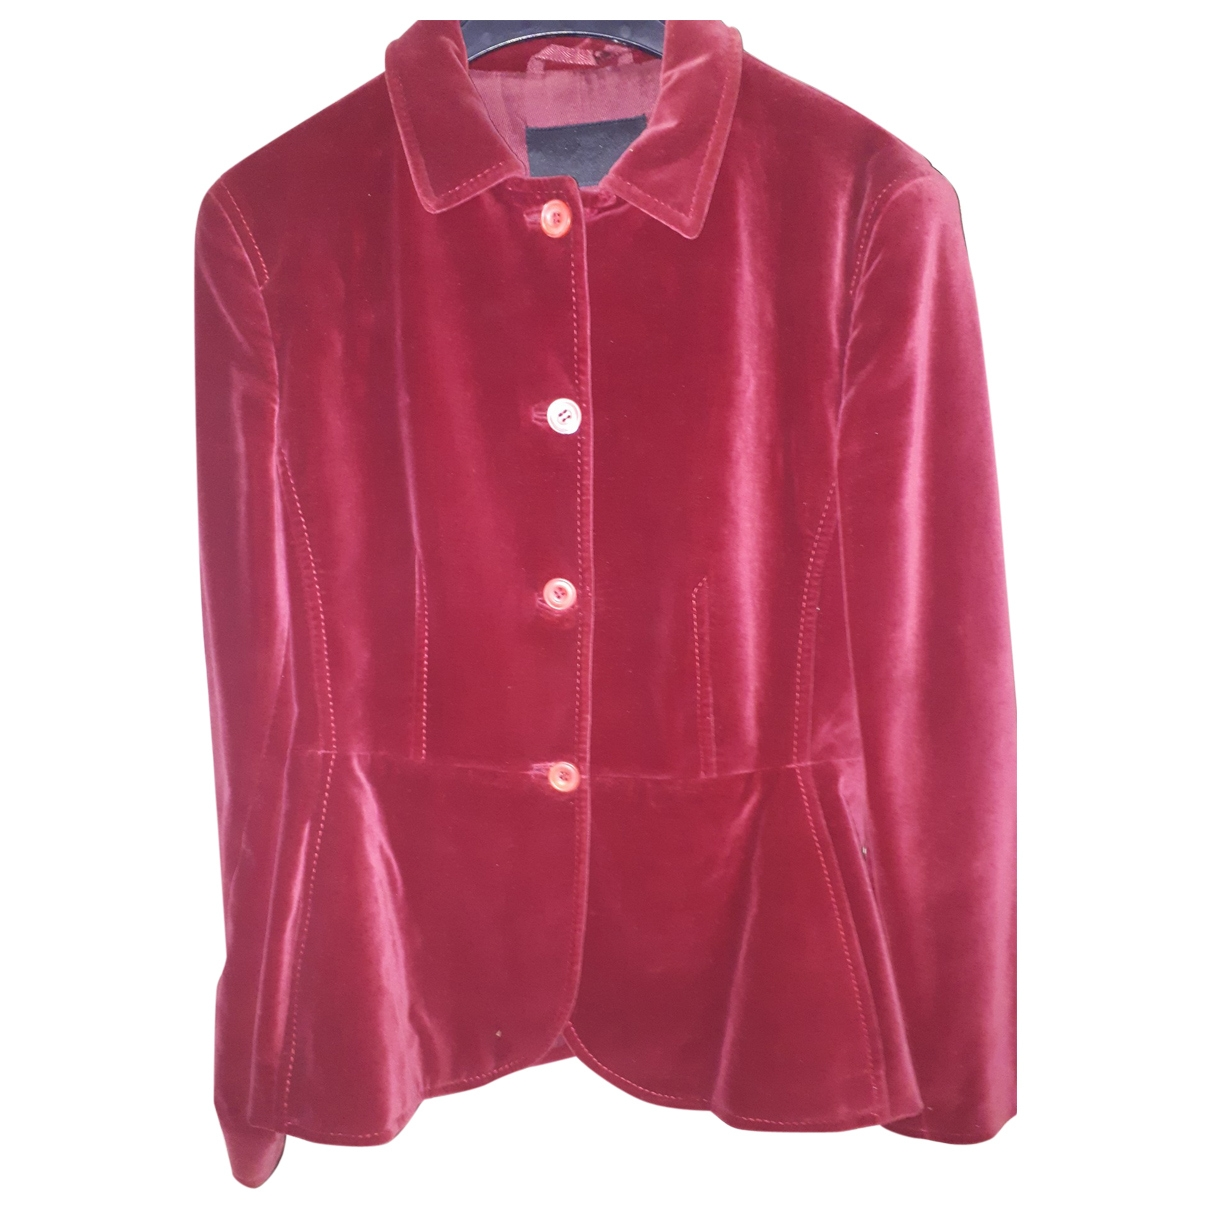 Prada \N Burgundy Velvet jacket for Women 44 IT